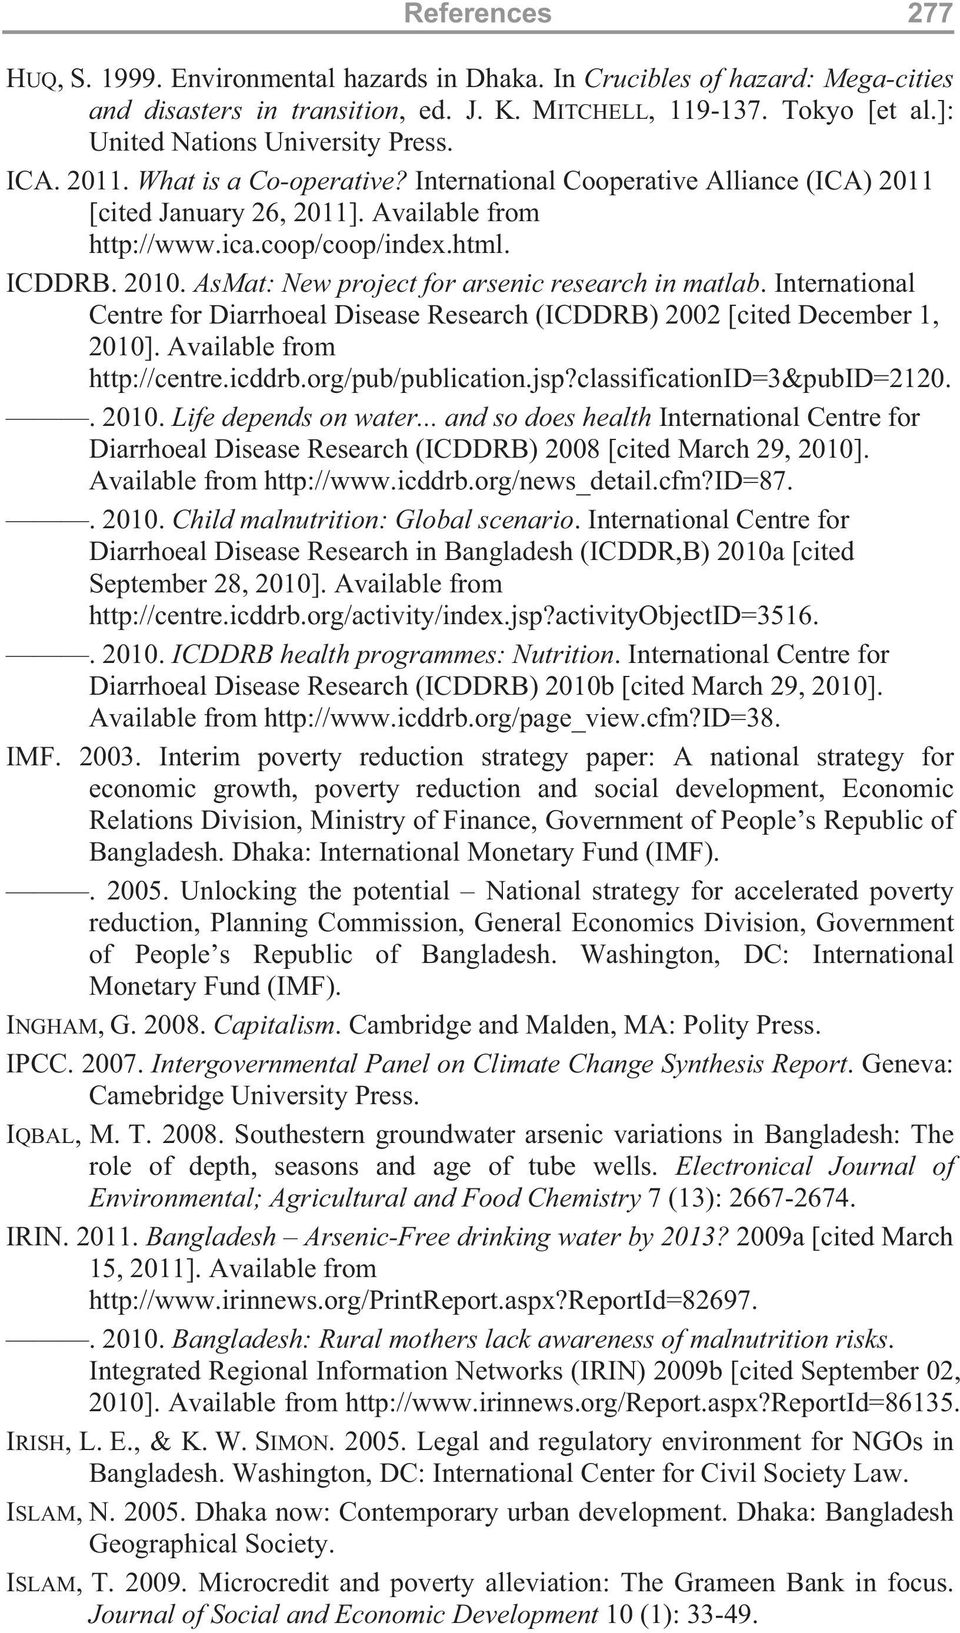 ICDDRB. 2010. AsMat: New project for arsenic research in matlab. International Centre for Diarrhoeal Disease Research (ICDDRB) 2002 [cited December 1, 2010]. Available from http://centre.icddrb.